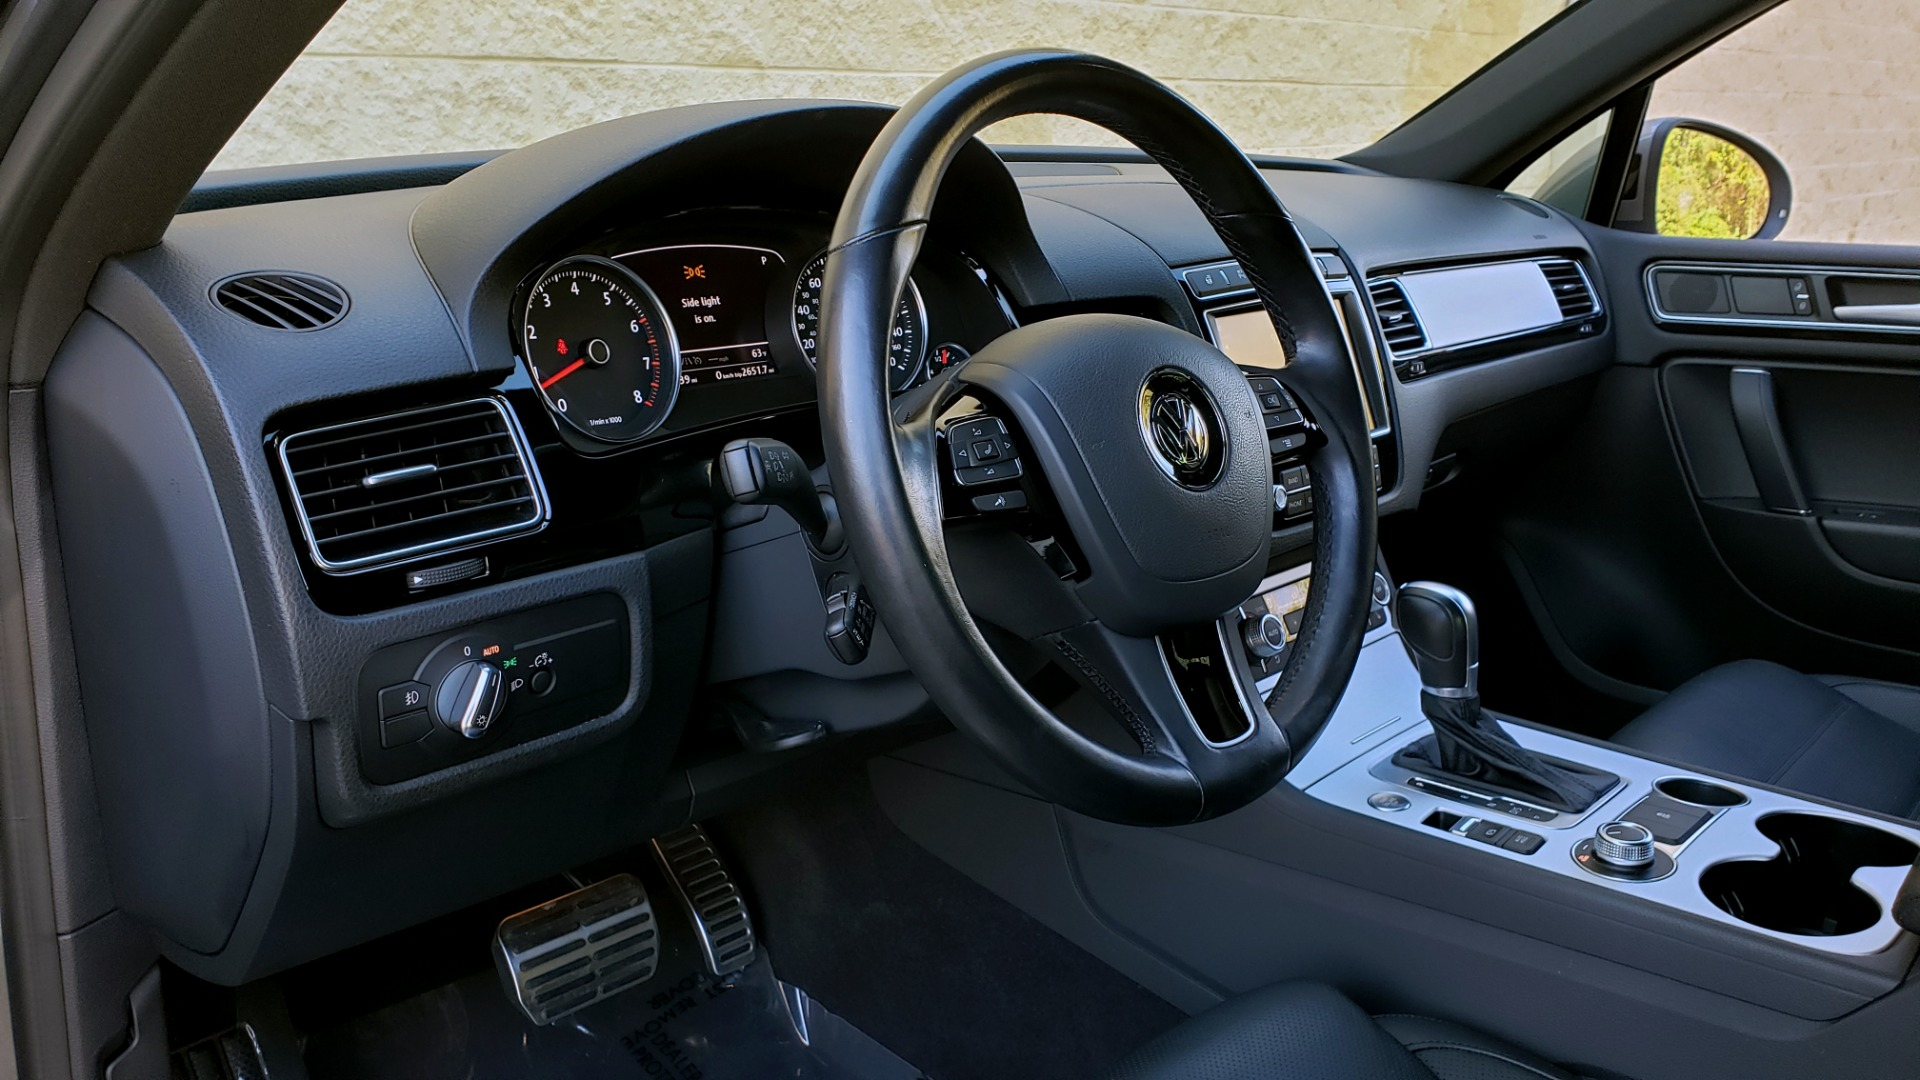 Used 2017 Volkswagen TOUAREG V6 WOLFSBURG EDITION / NAV / PANO-ROOF / ACC / REARVIEW for sale Sold at Formula Imports in Charlotte NC 28227 42